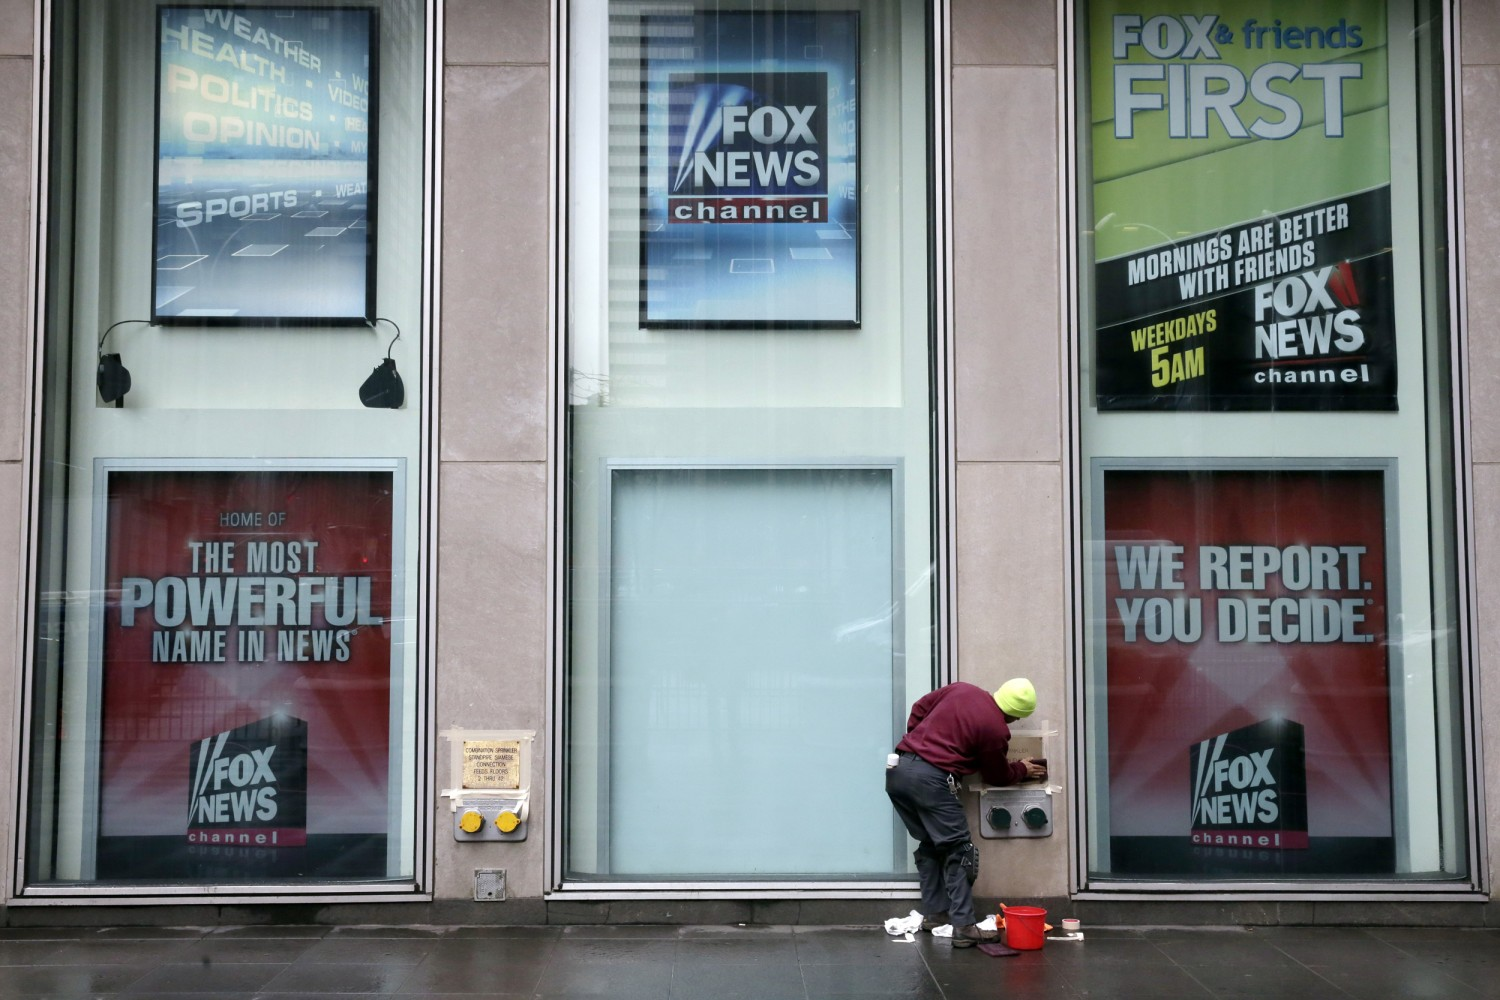 10 ways he and Fox News harassed us all